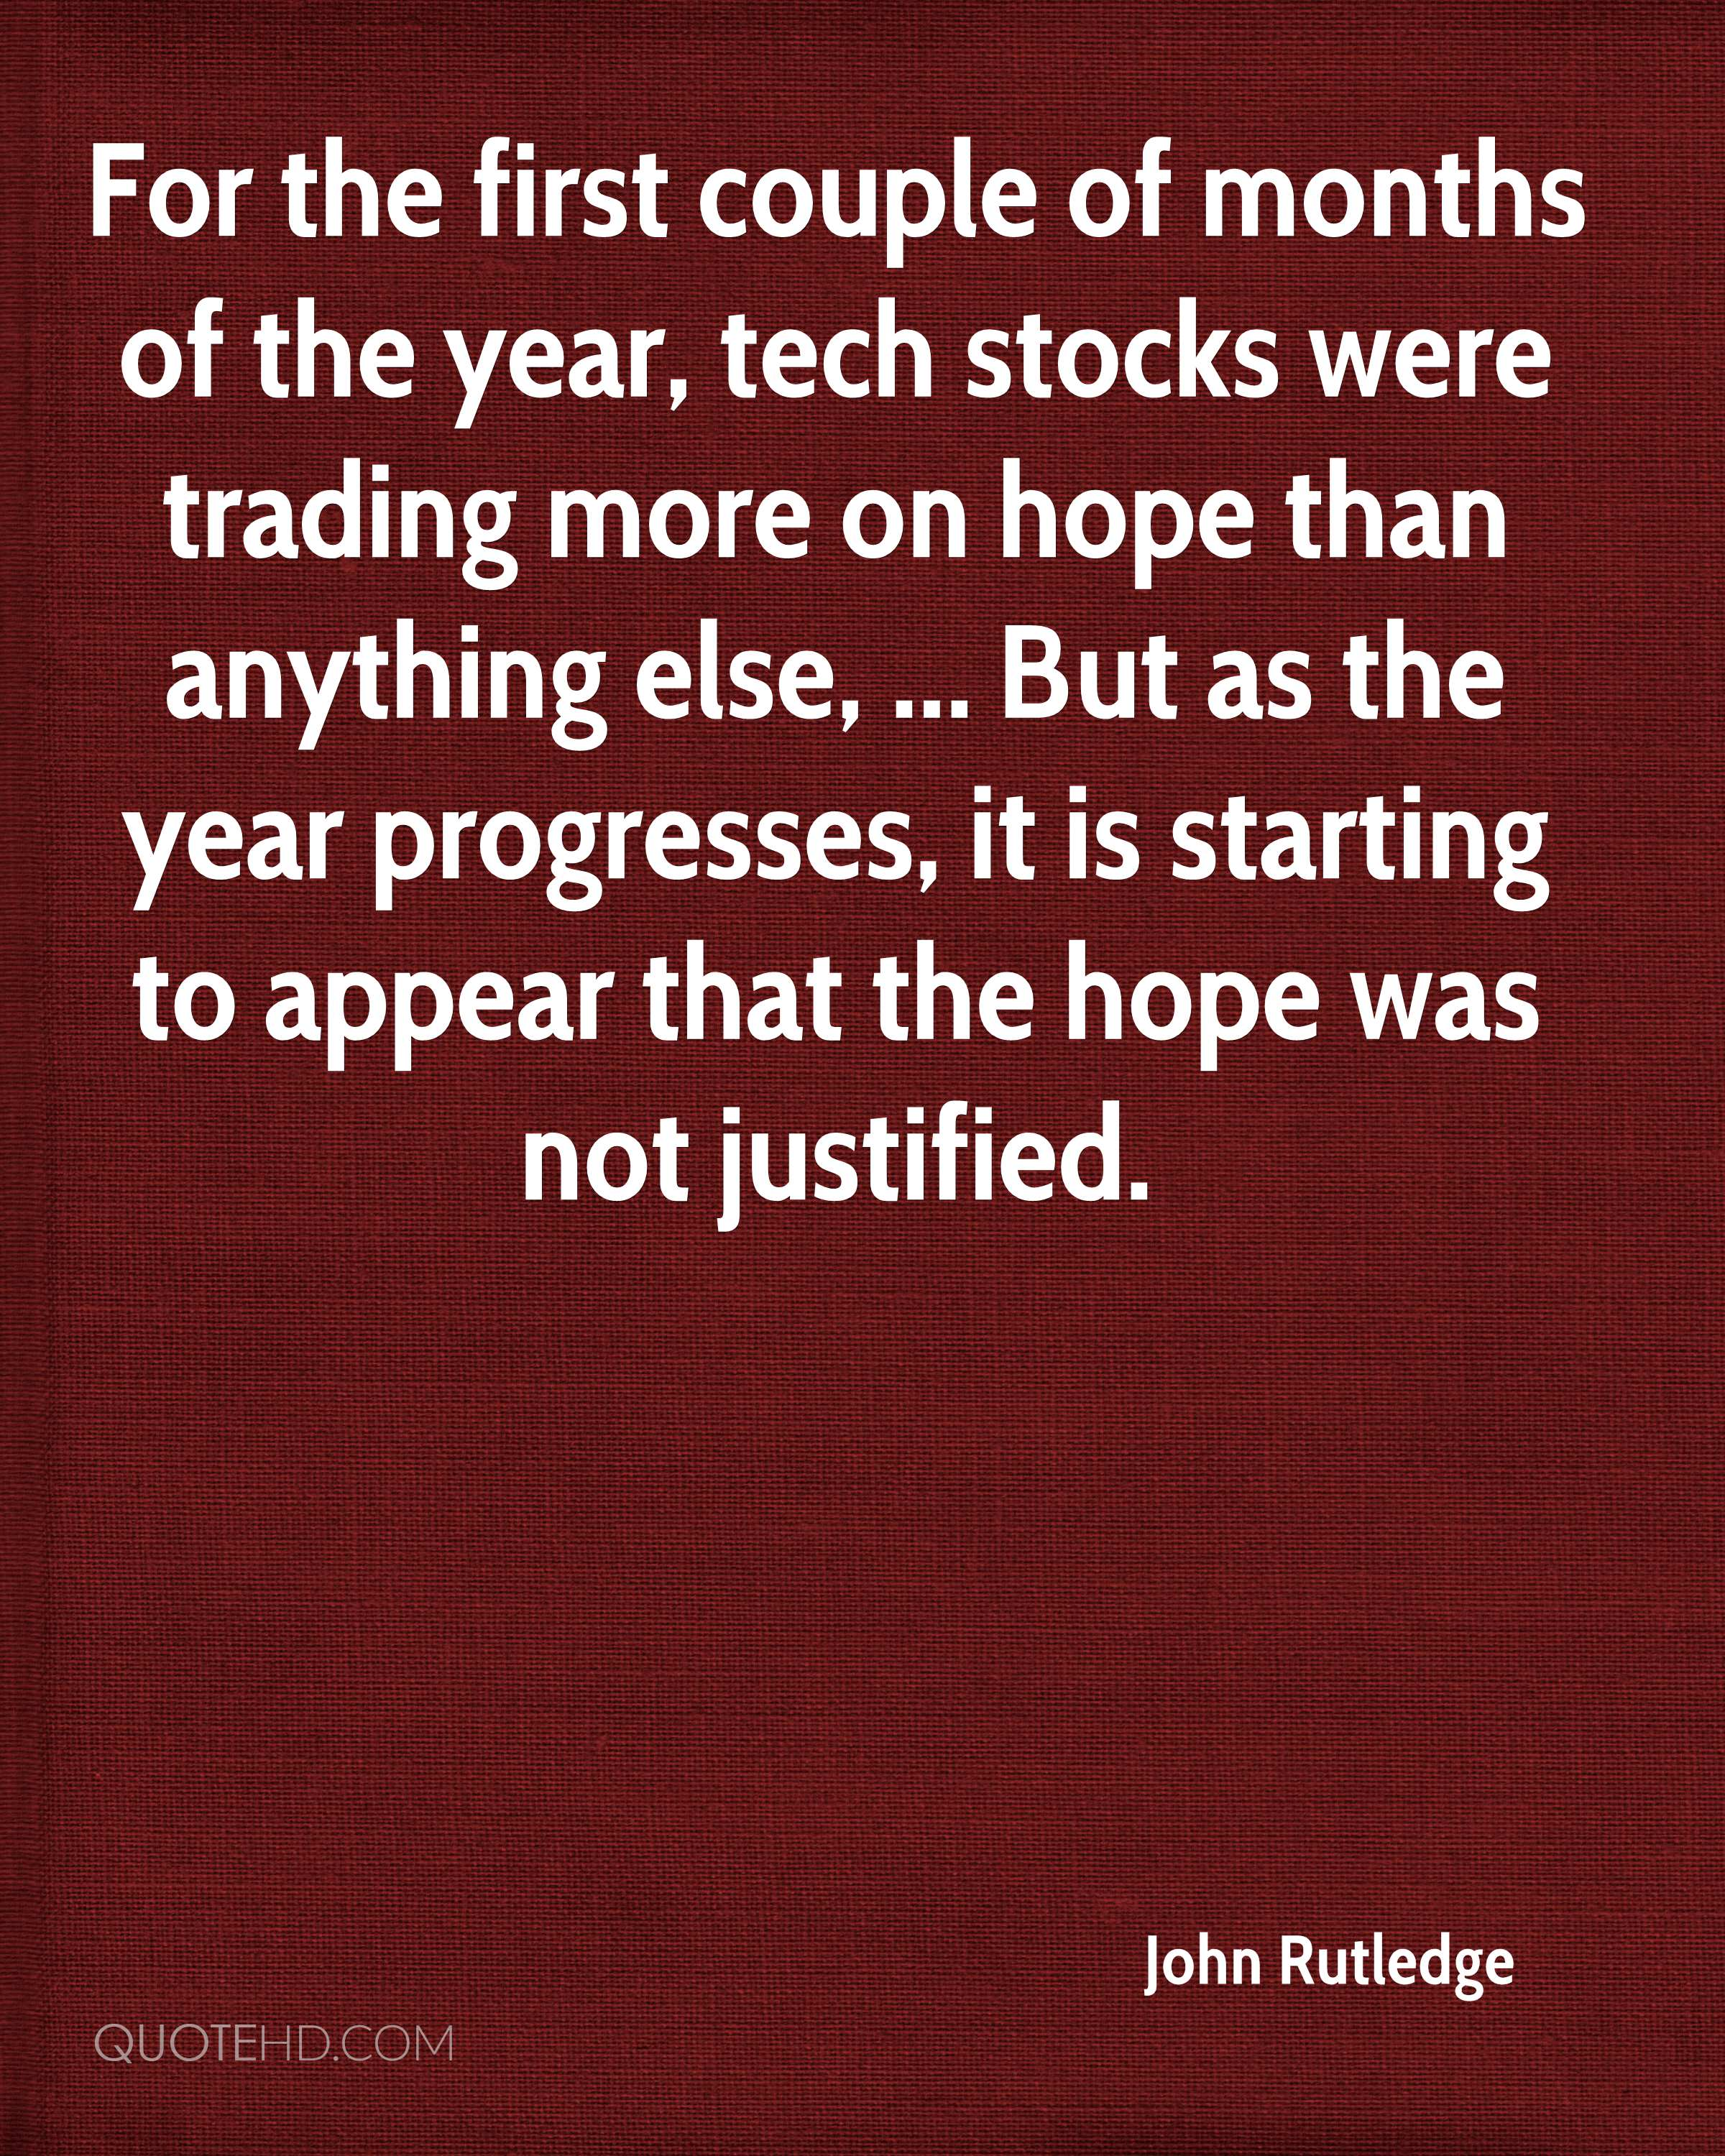 For the first couple of months of the year, tech stocks were trading more on hope than anything else, ... But as the year progresses, it is starting to appear that the hope was not justified.